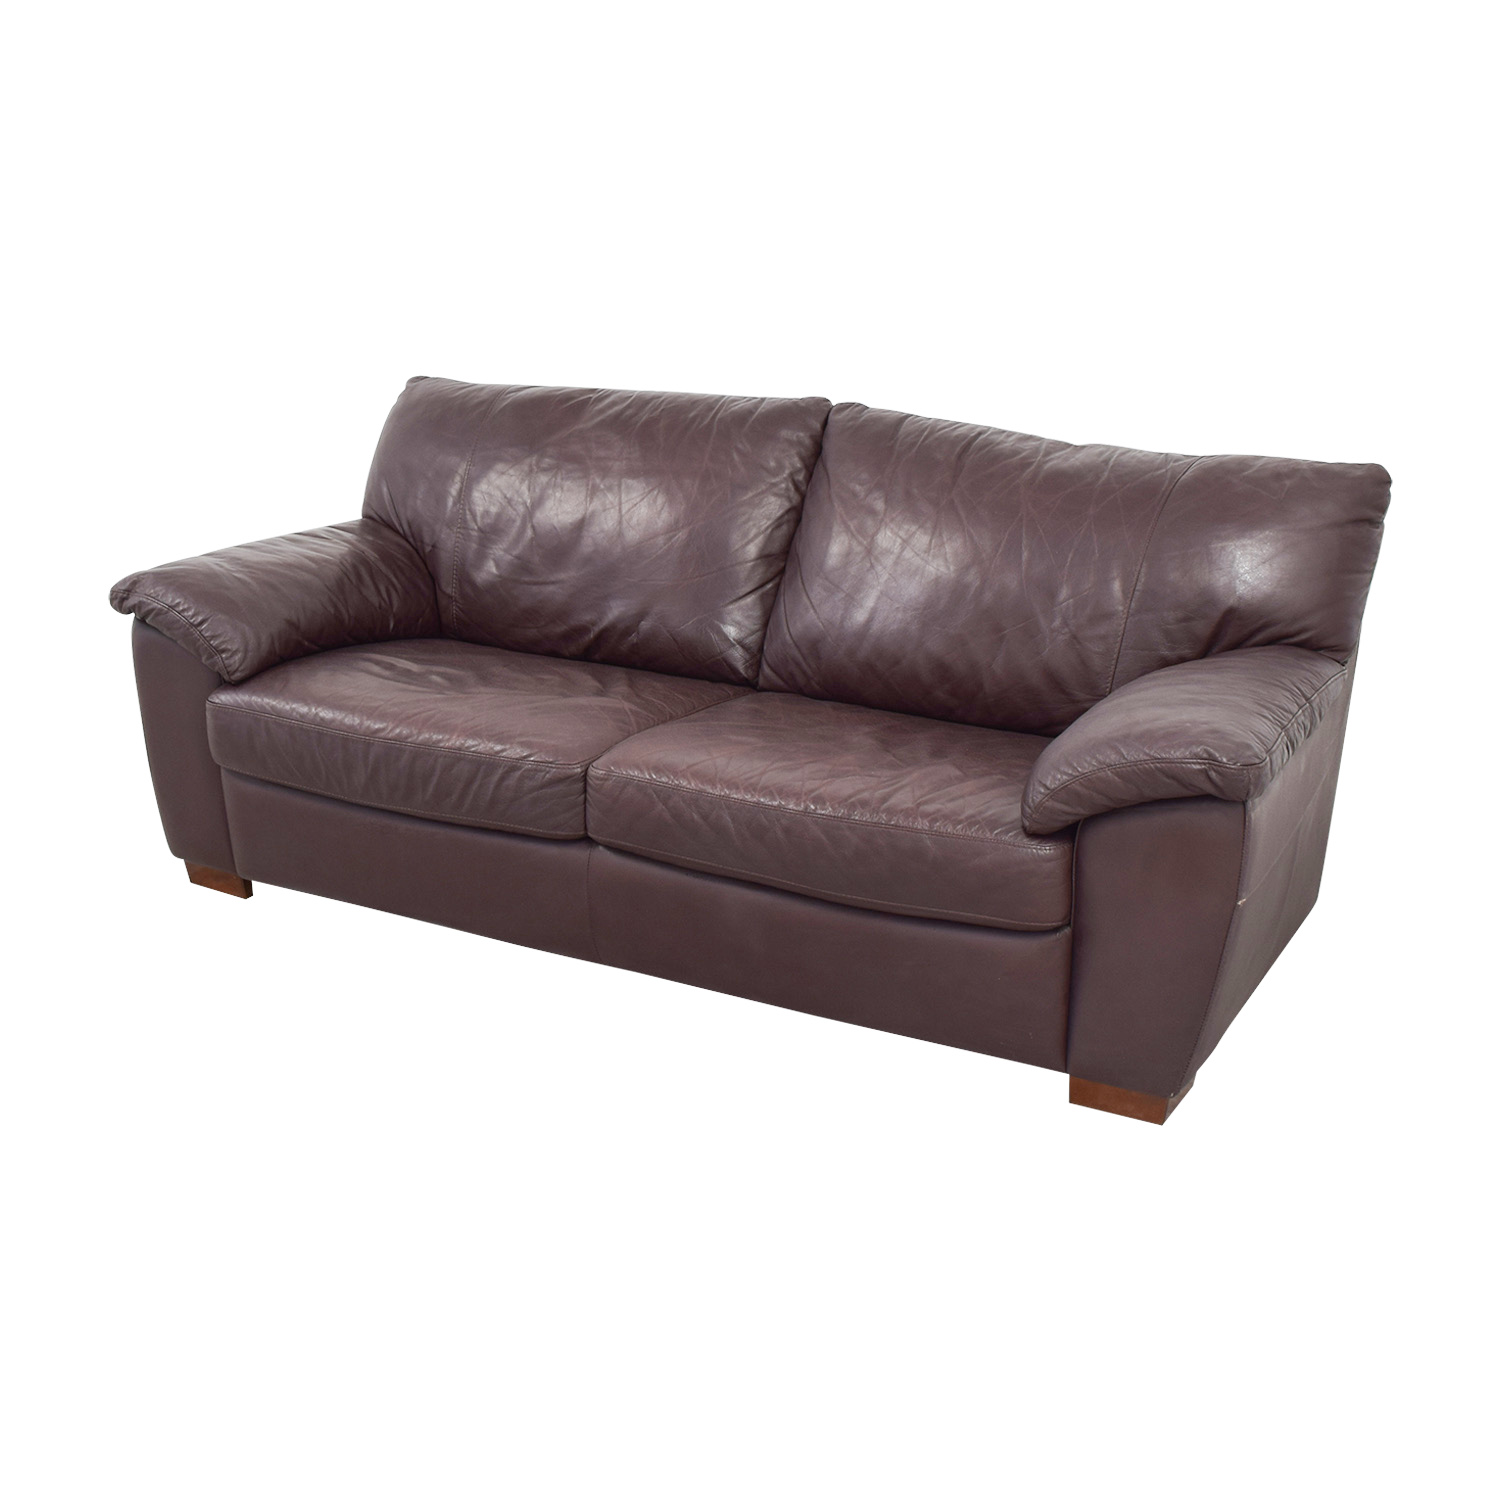 87 off ikea ikea vreta brown leather two cushion sofa for Ikea sofa set